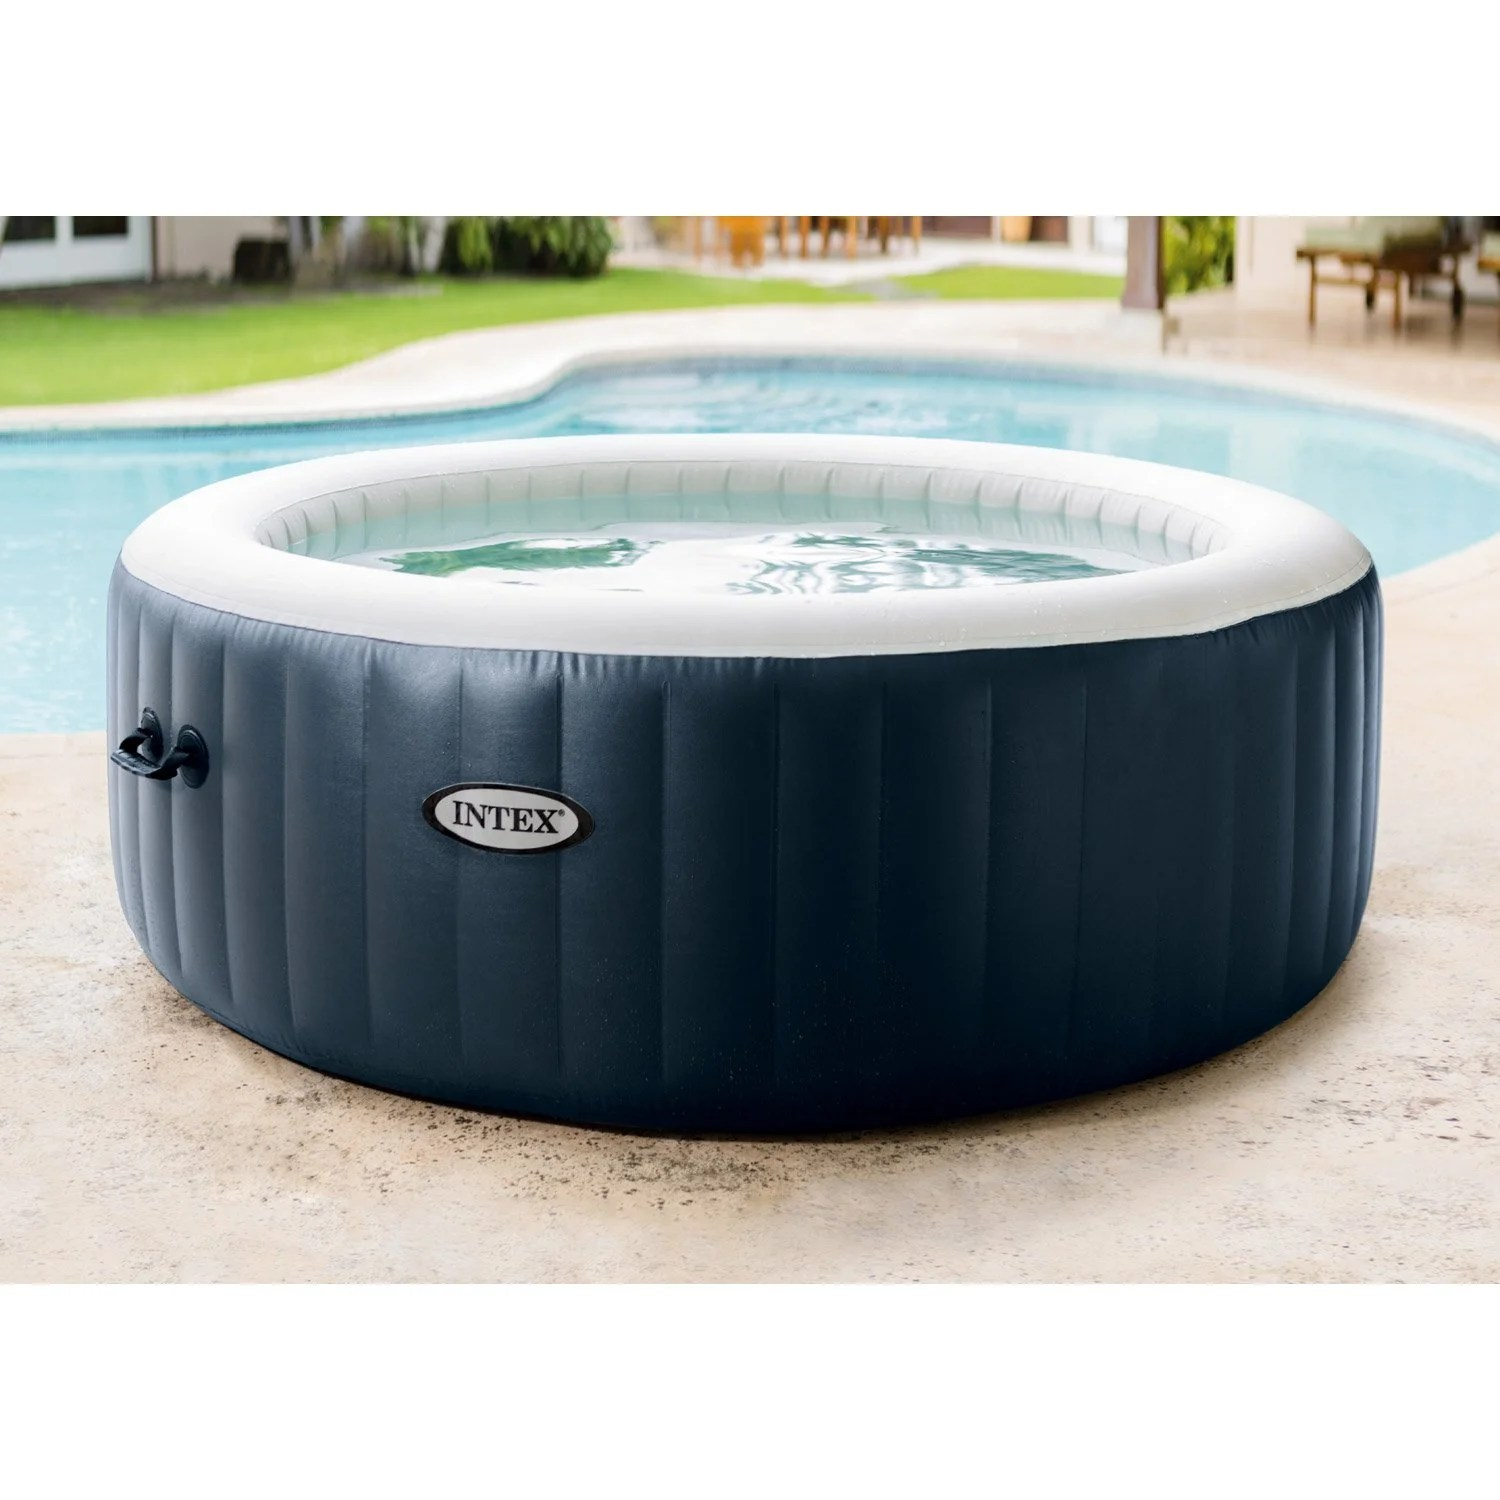 Spa Exterieur La Rochelle Spa Gonflable Intex Purespa Bulles Blue Navy Rond 6 Places Assises